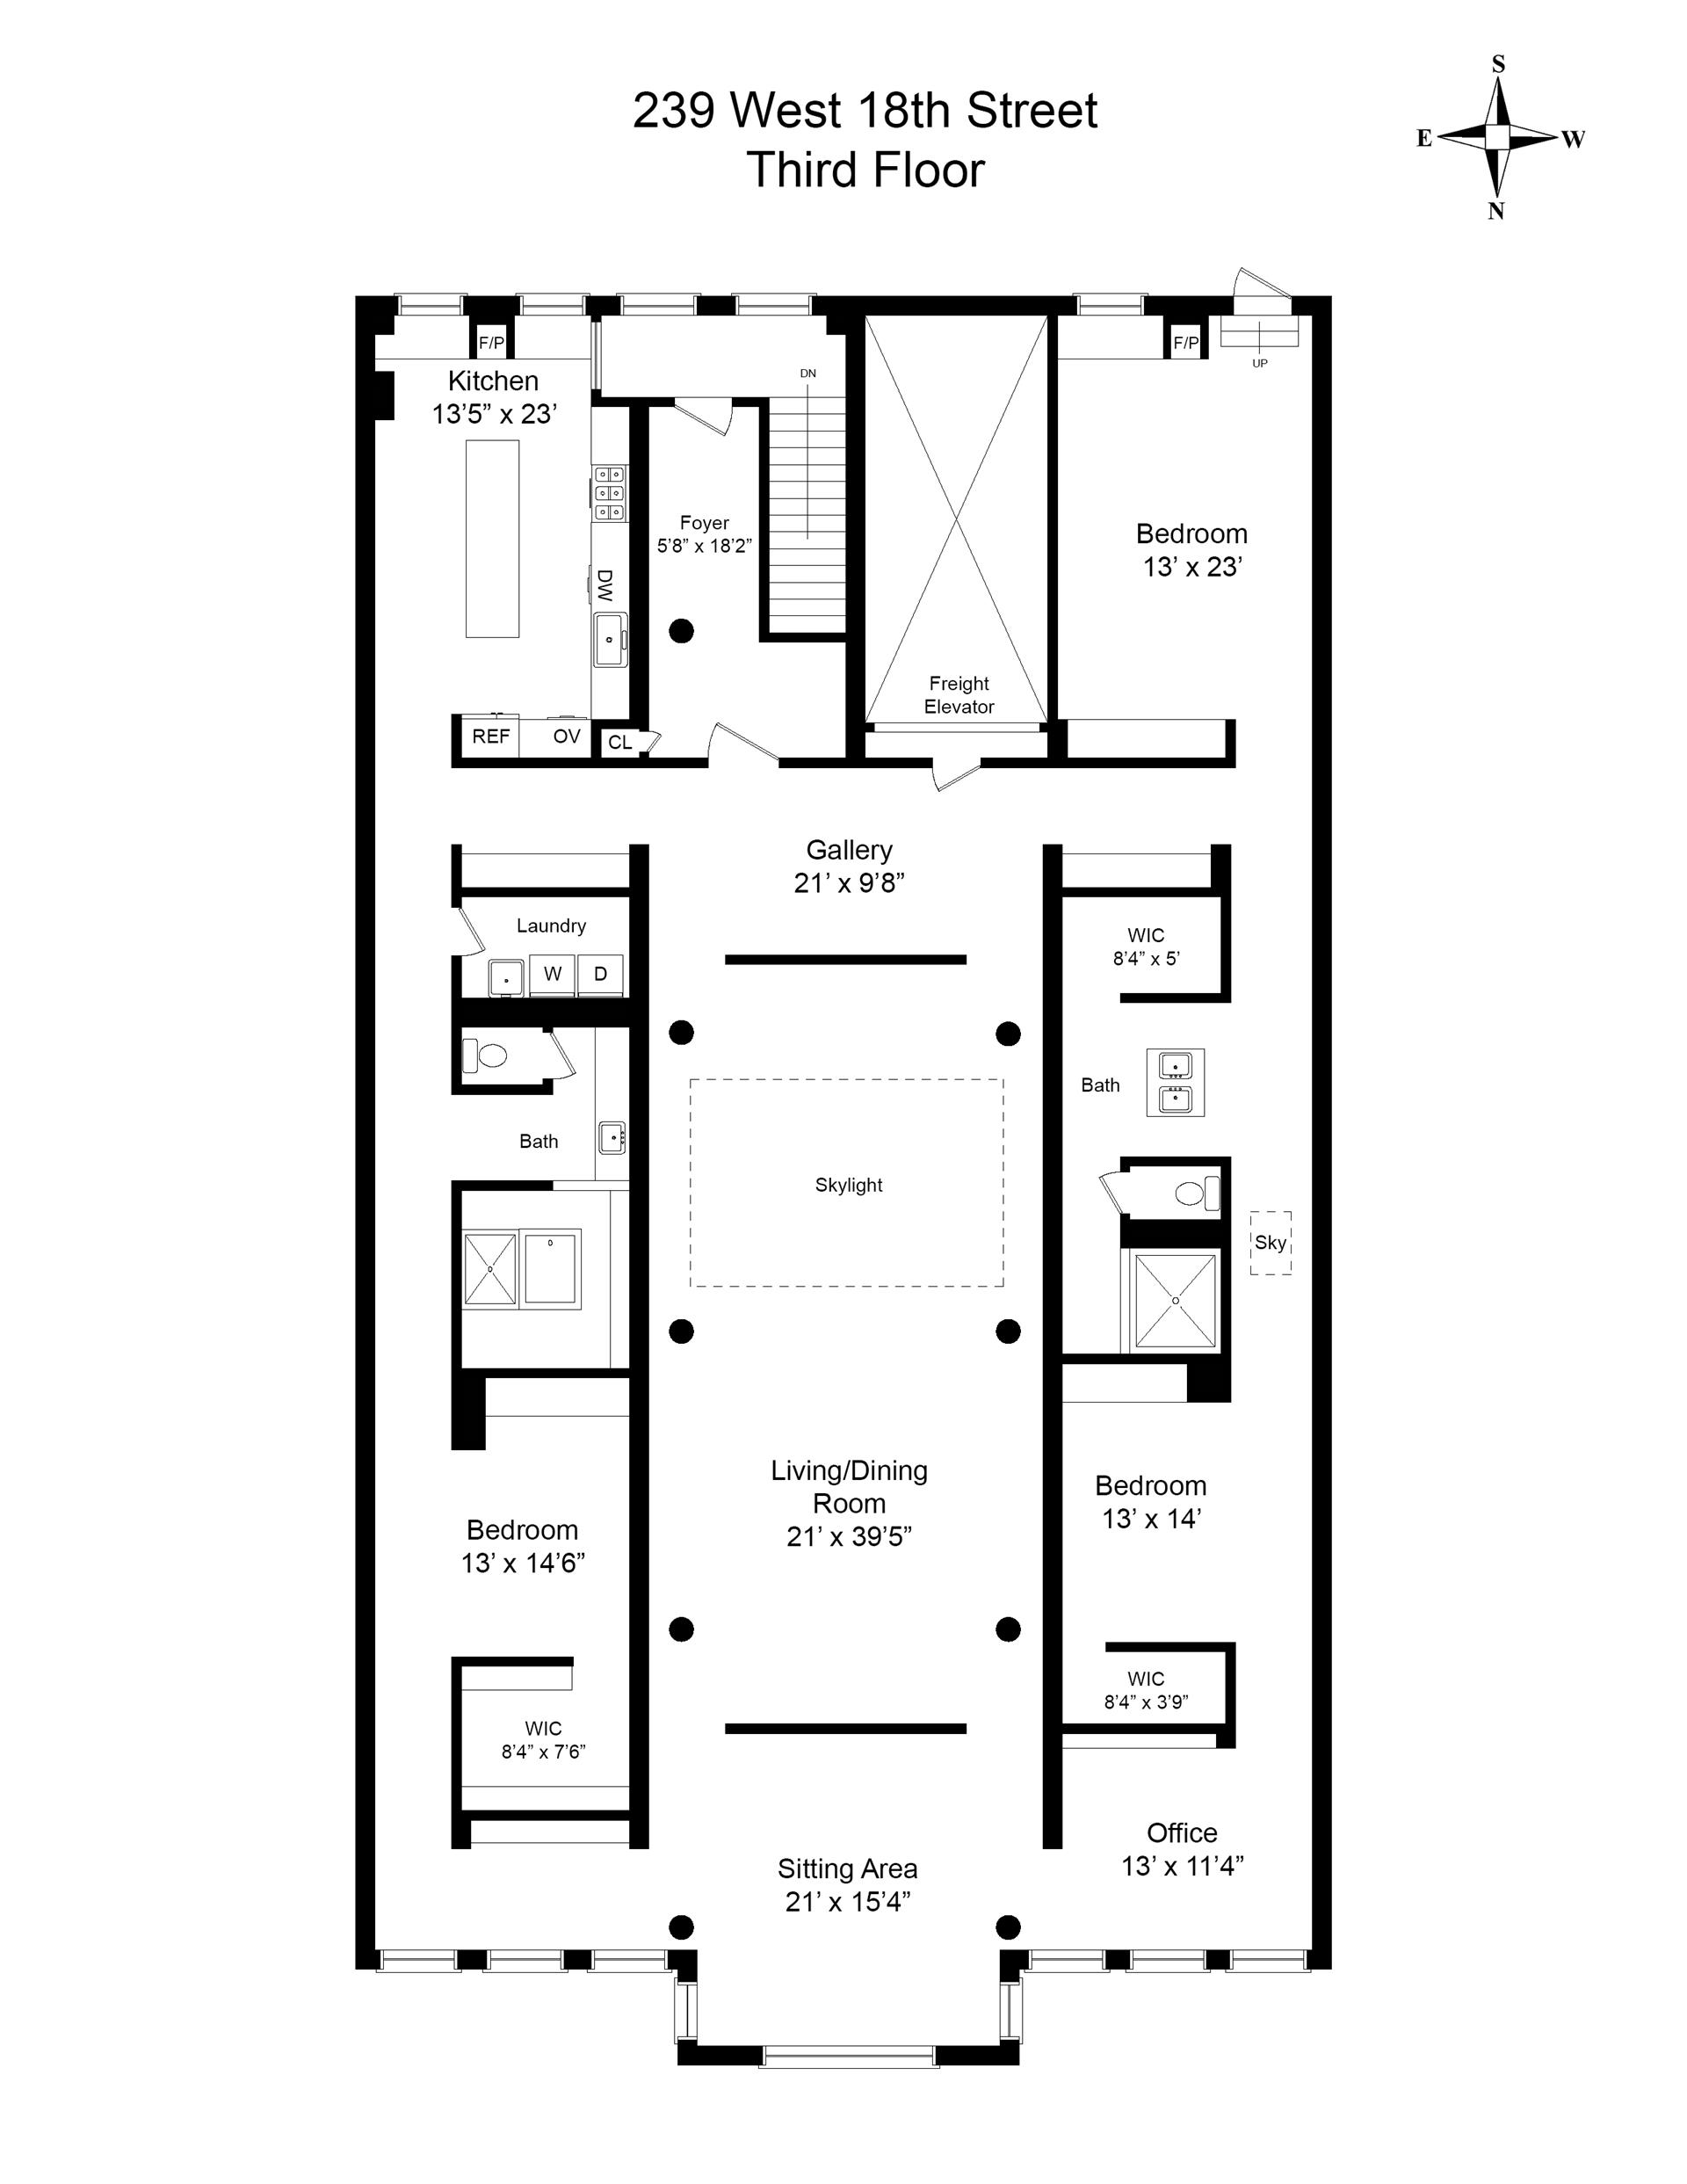 Floor plan of 239-243 West 18th St - Chelsea, New York